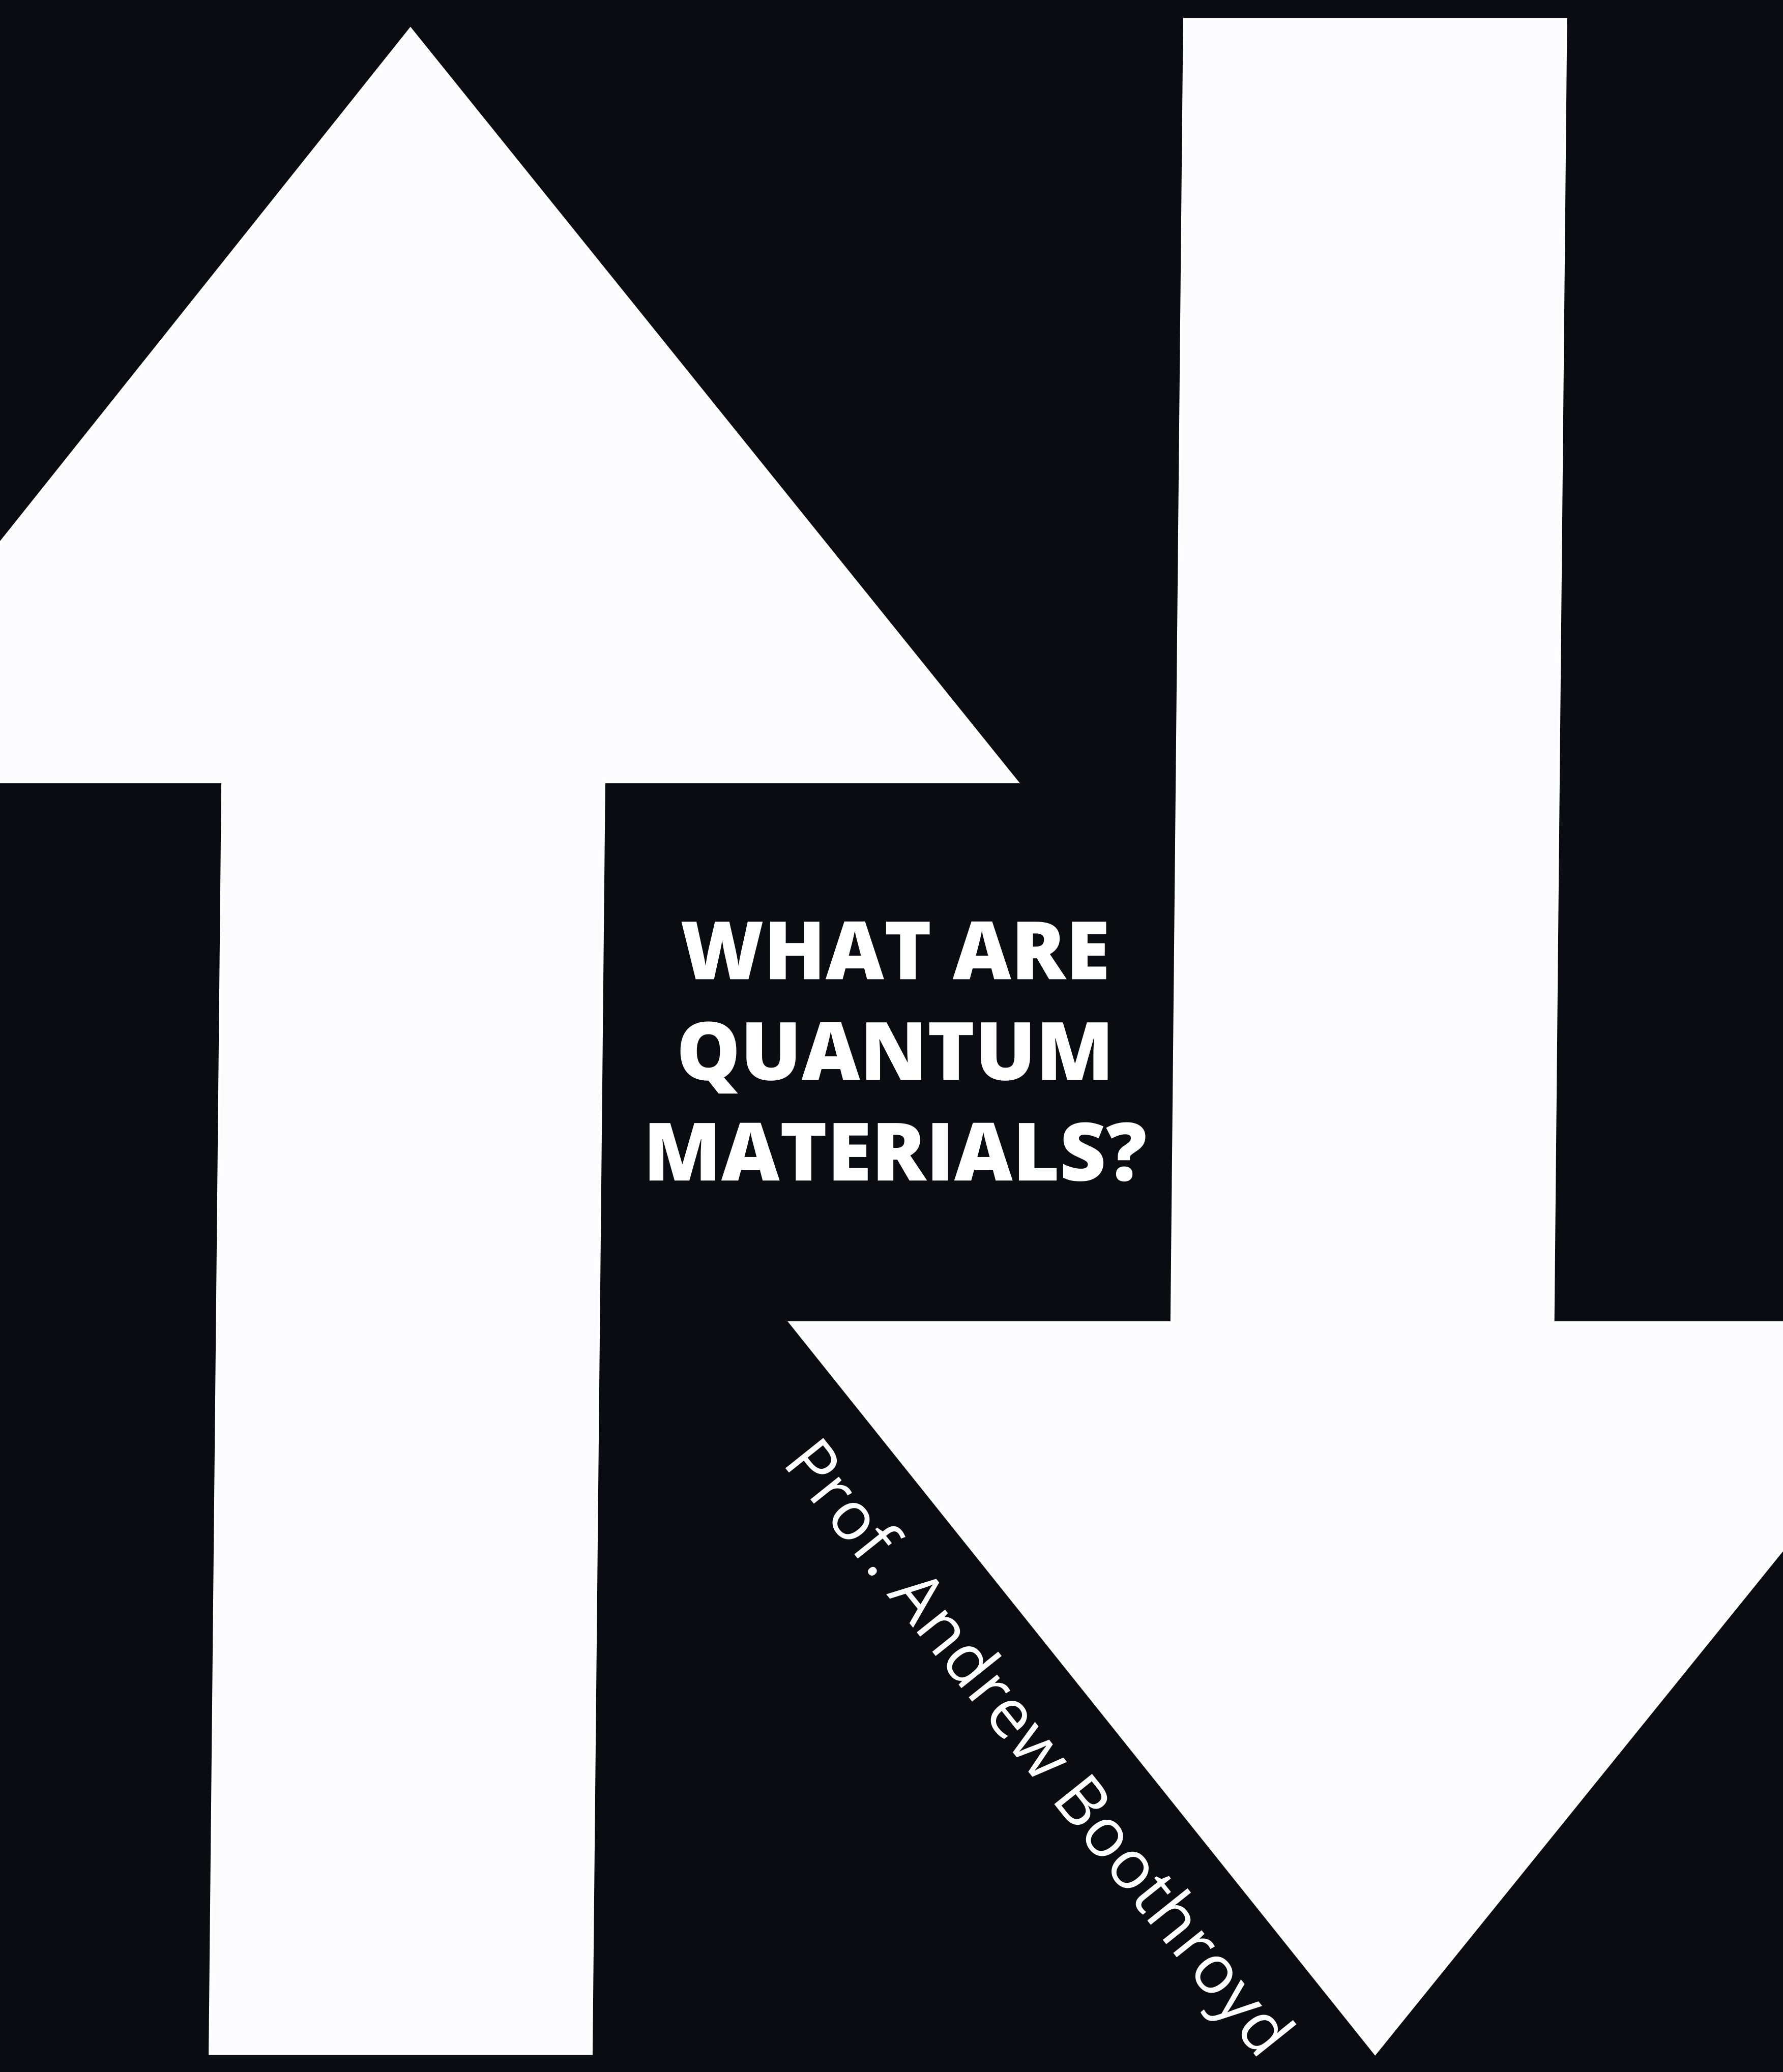 What are Quantum Materials?